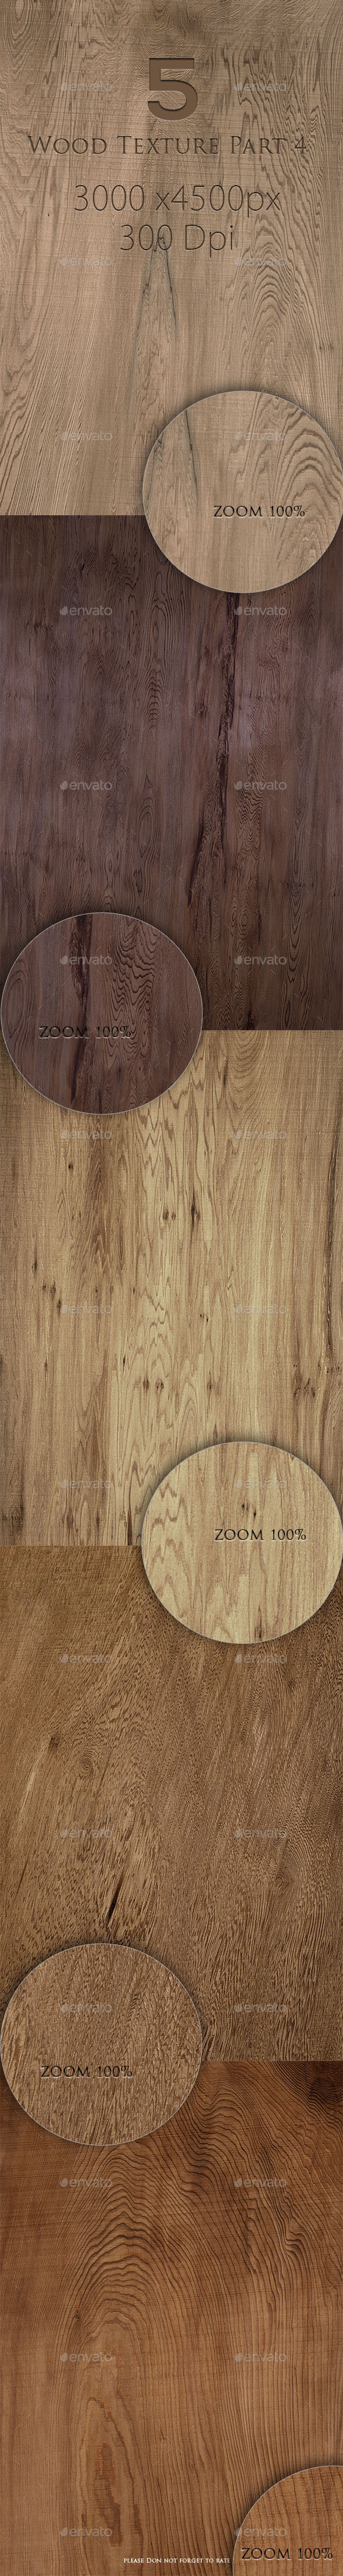 GraphicRiver 5 Wood Texture Part 4 9764025